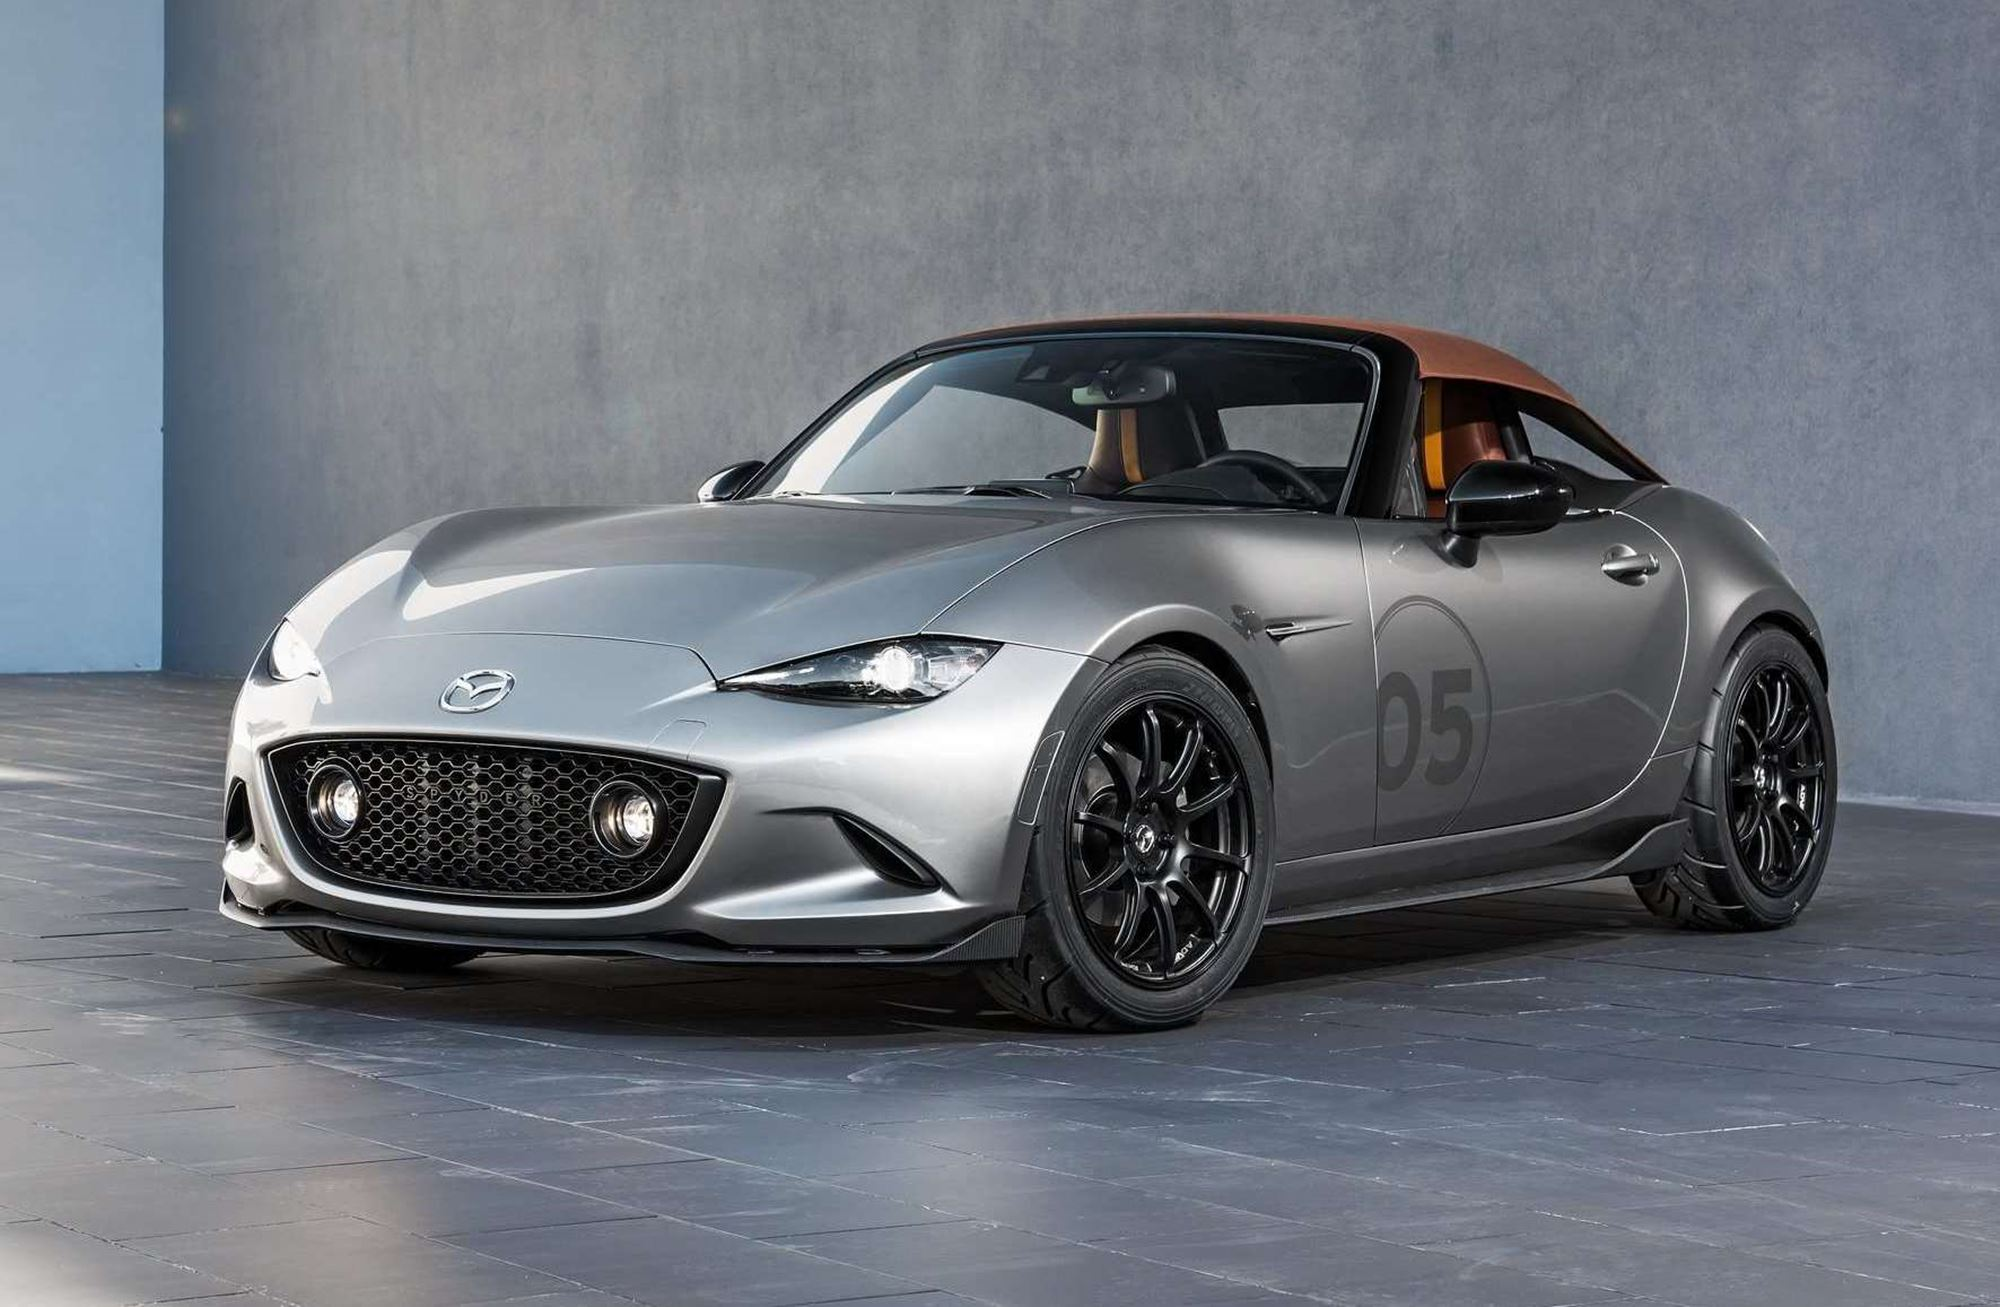 2016 Mazda Mx 5 Spyder And Mx 5 Speedster Concepts